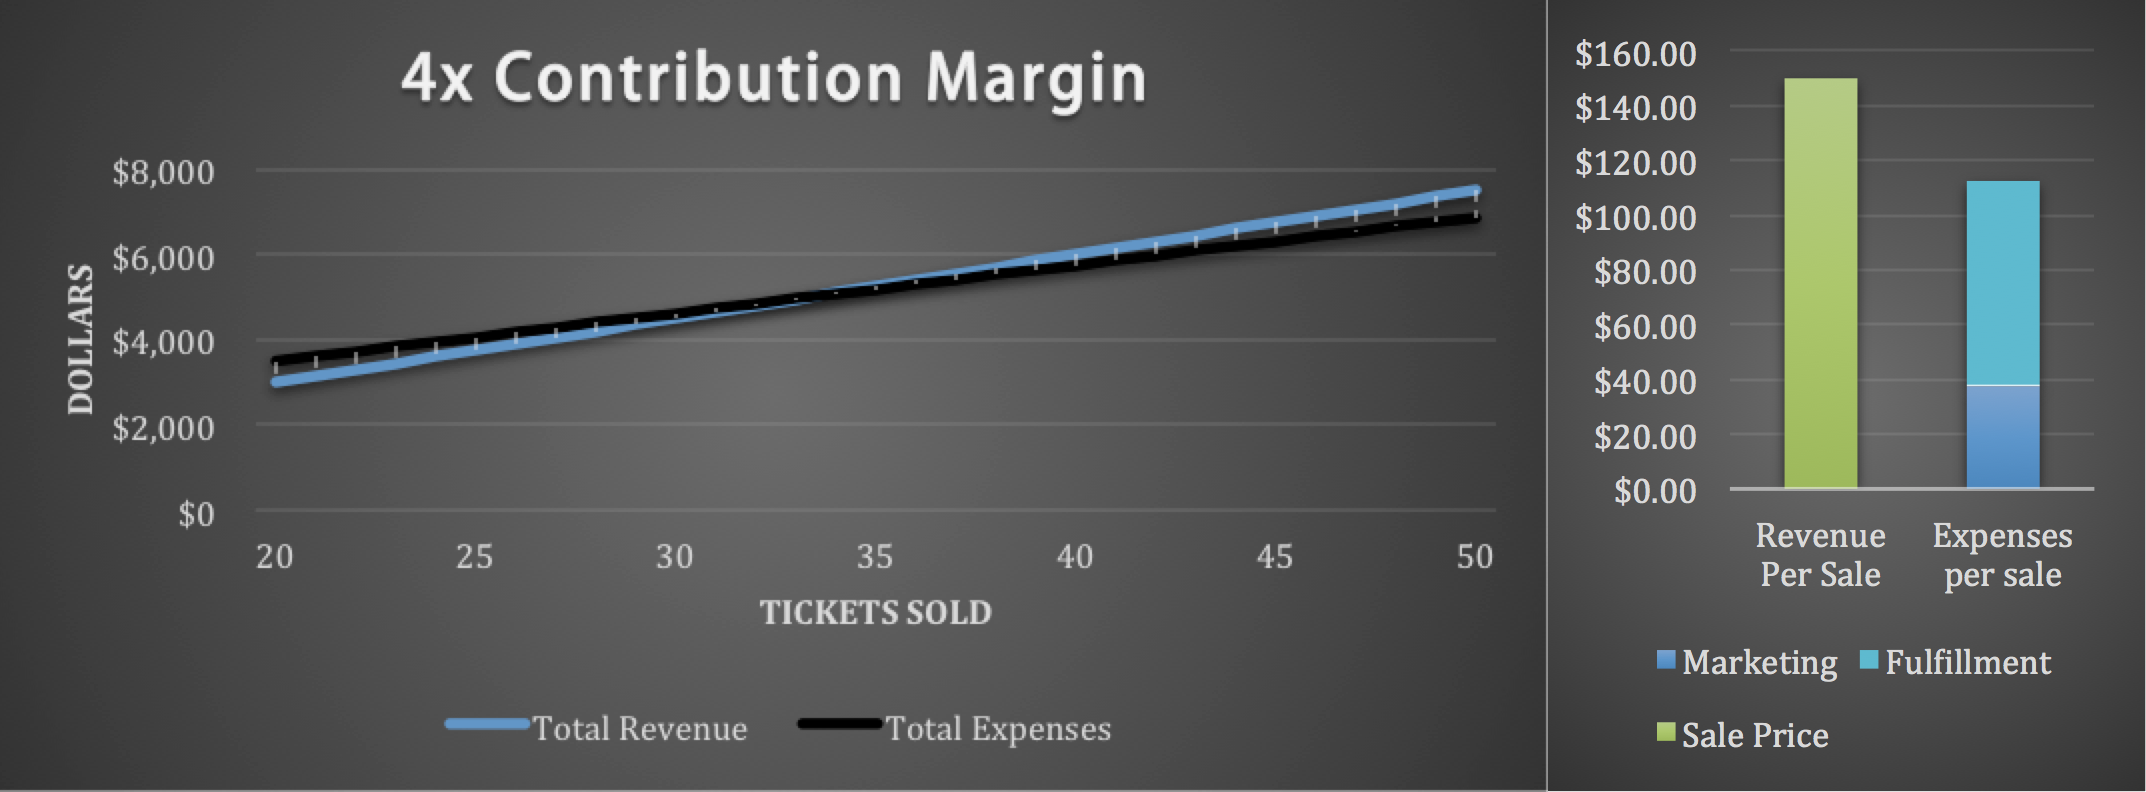 4X Contribution Margin